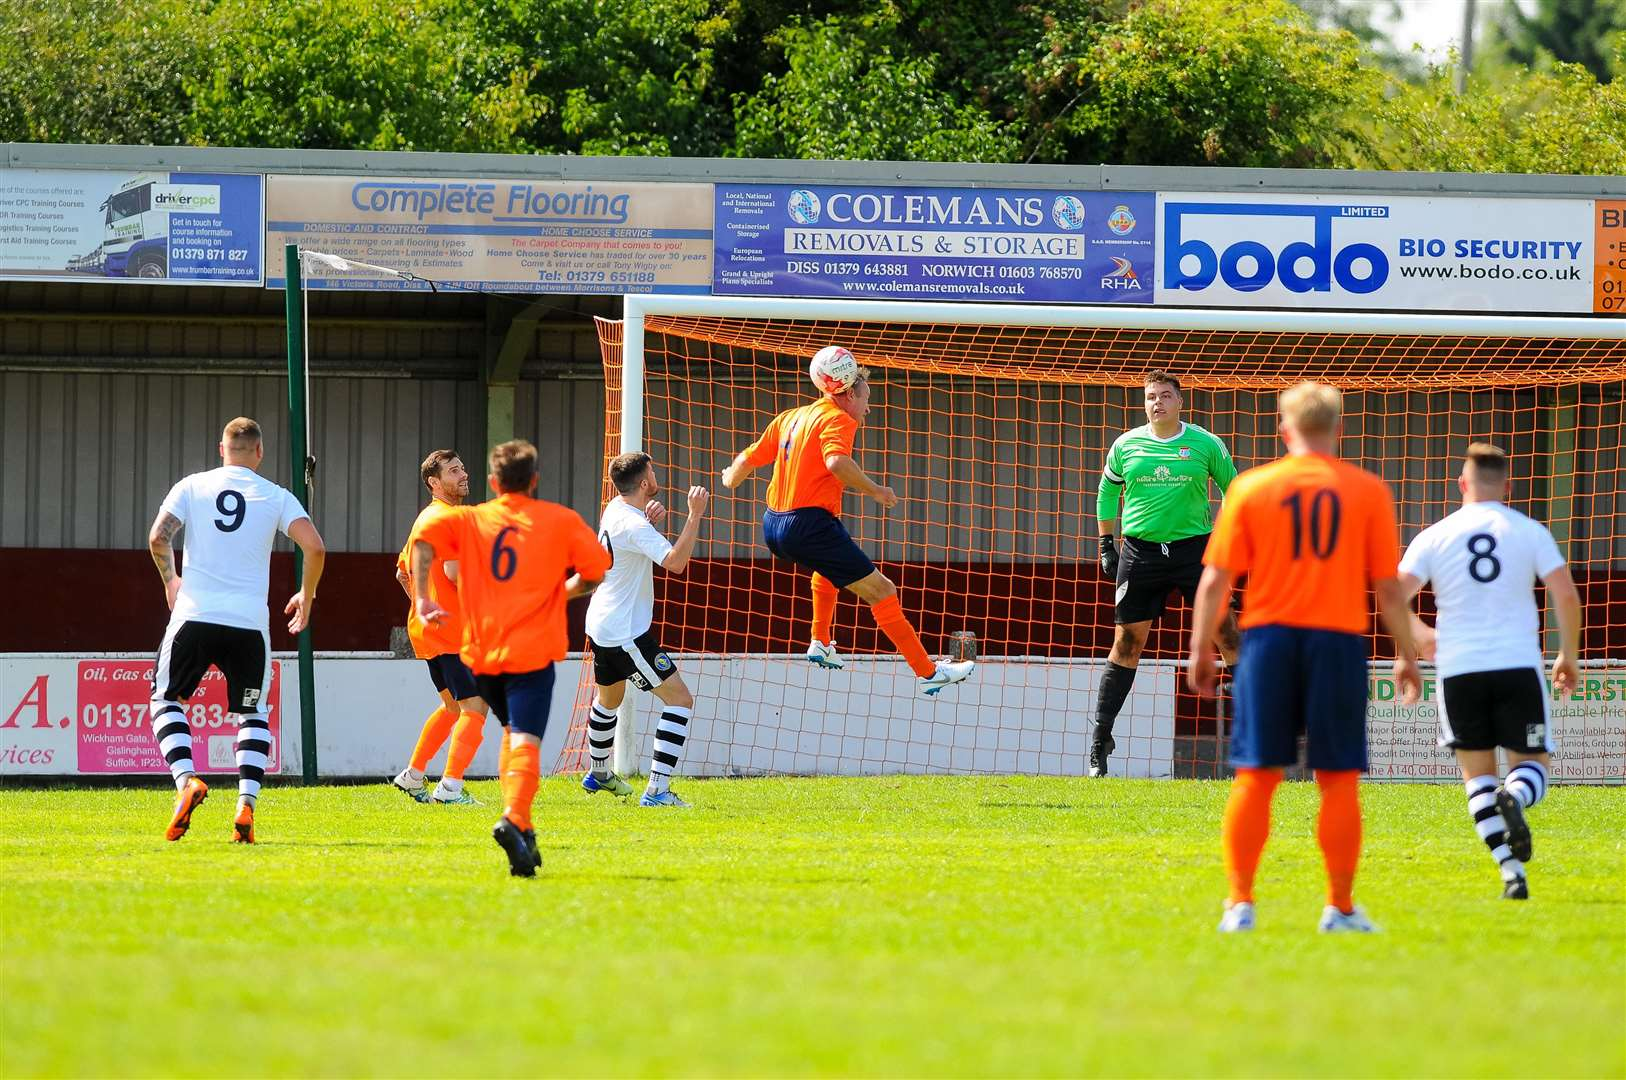 Diss, Norfolk, 11 August 2018..Football action from Diss Town FC v King's Lynn Reserves - Ricky Cornish..Picture by Mark Bullimore Photography. (6440763)